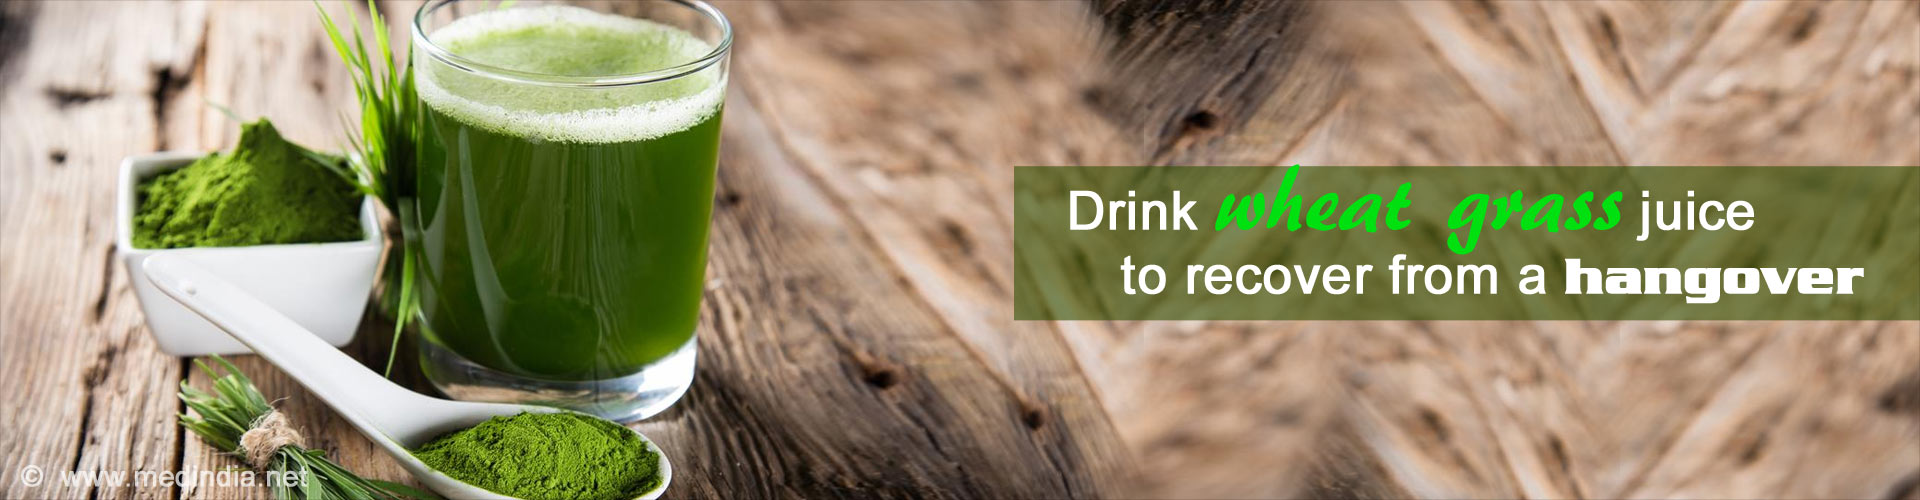 Drink Wheat Grass Juice to Recover From a Hangover